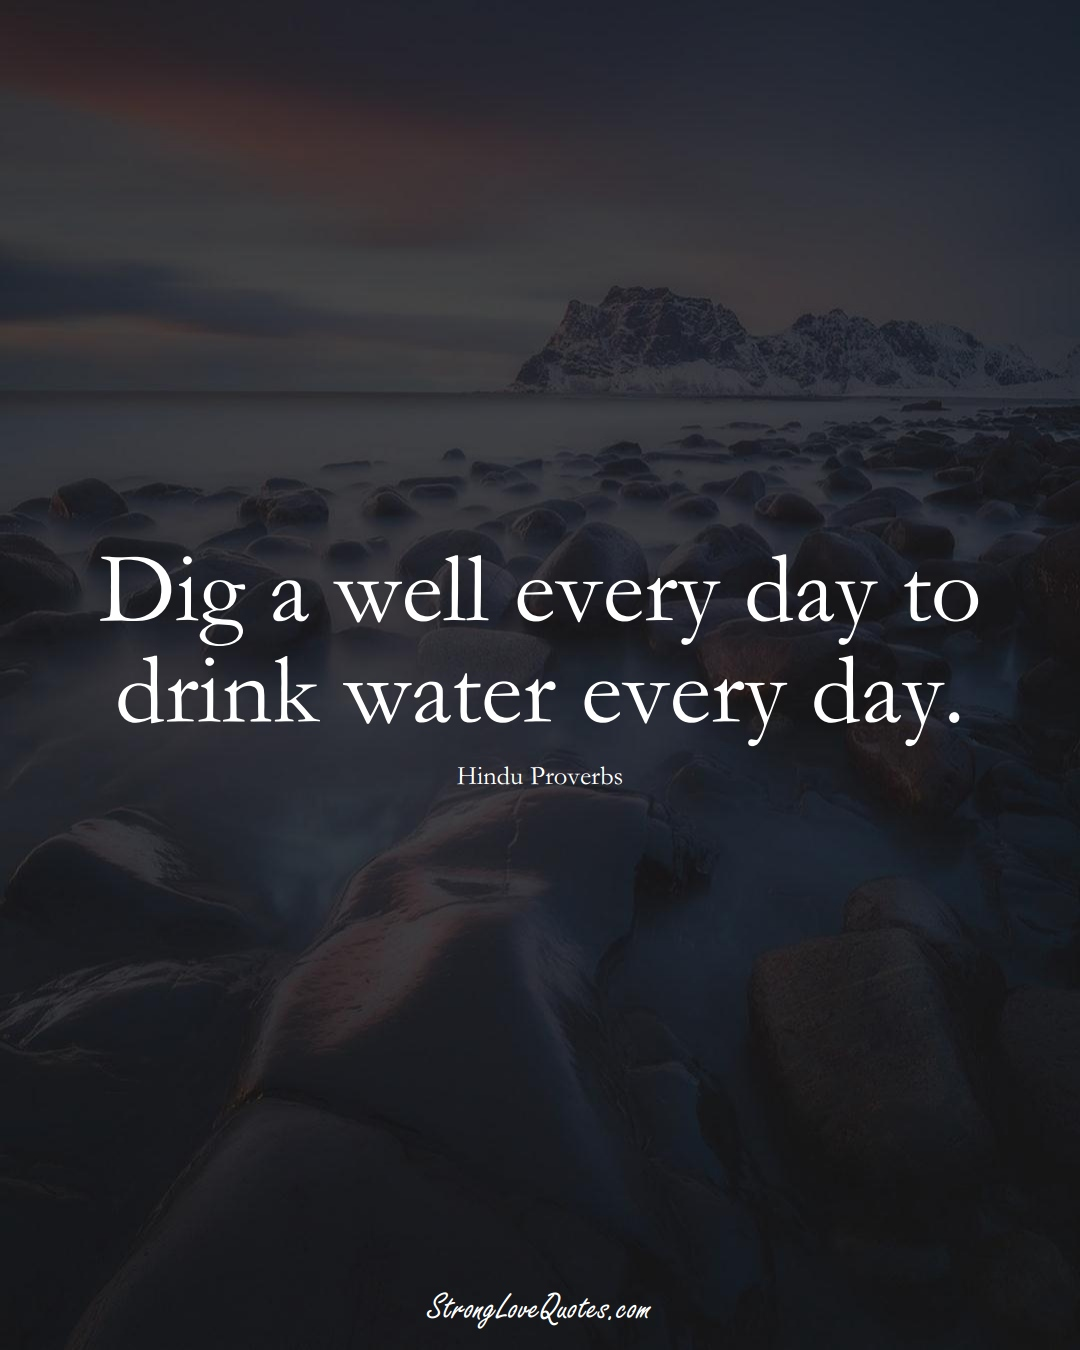 Dig a well every day to drink water every day. (Hindu Sayings);  #aVarietyofCulturesSayings